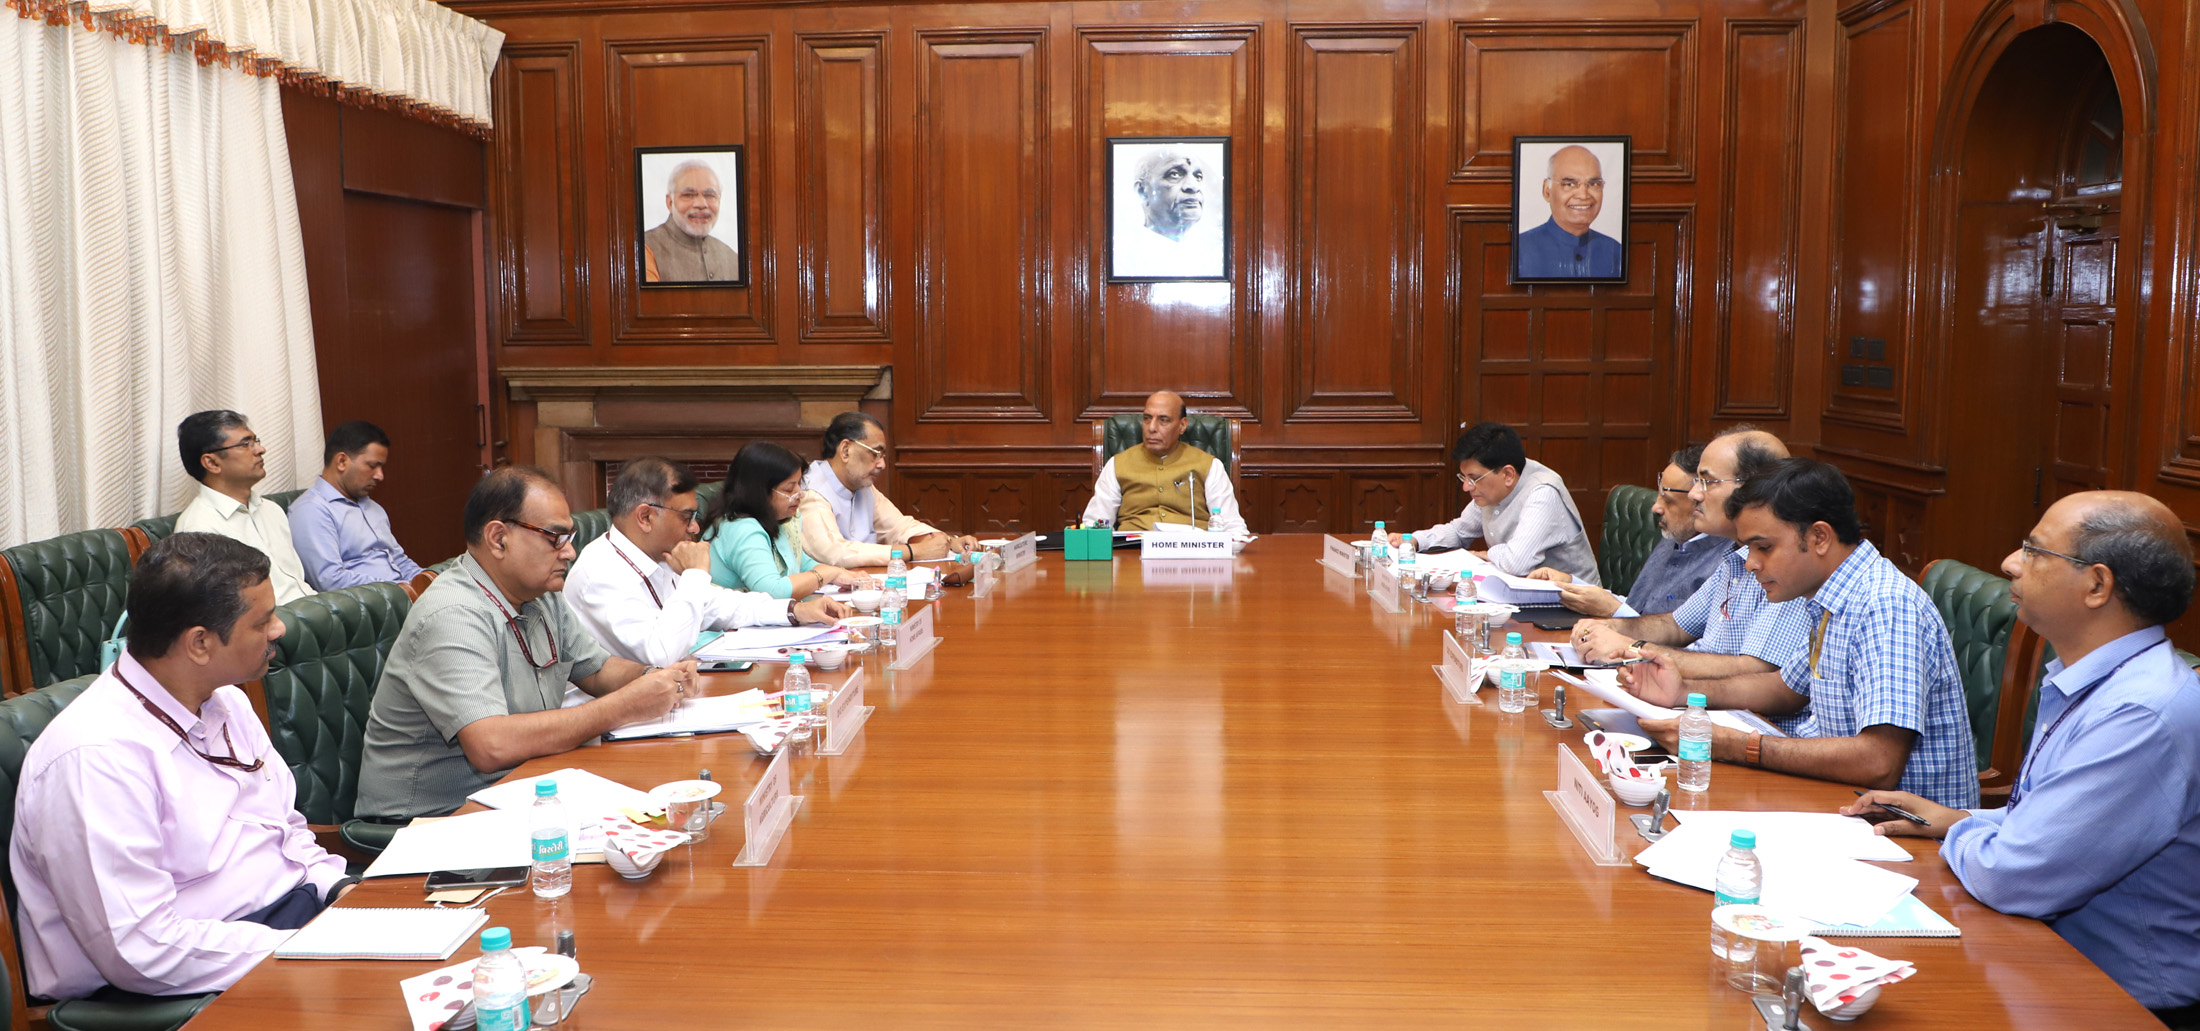 The Union Home Minister, Shri Rajnath Singh chairing a meeting of the High Level Committee (HLC) for Central Assistance to the states of Andhra Pradesh, Arunachal Pradesh and Nagaland, in New Delhi on June 29, 2018. The Union Minister for Agriculture and Farmers Welfare, Shri Radha Mohan Singh, the Union Minister for Railways, Coal, Finance and Corporate Affairs, Shri Piyush Goyal, the Union Home Secretary, Shri Rajiv Gauba and senior officers of the Ministries of Home Affairs, Finance and Agriculture and NITI Aayog are also seen.